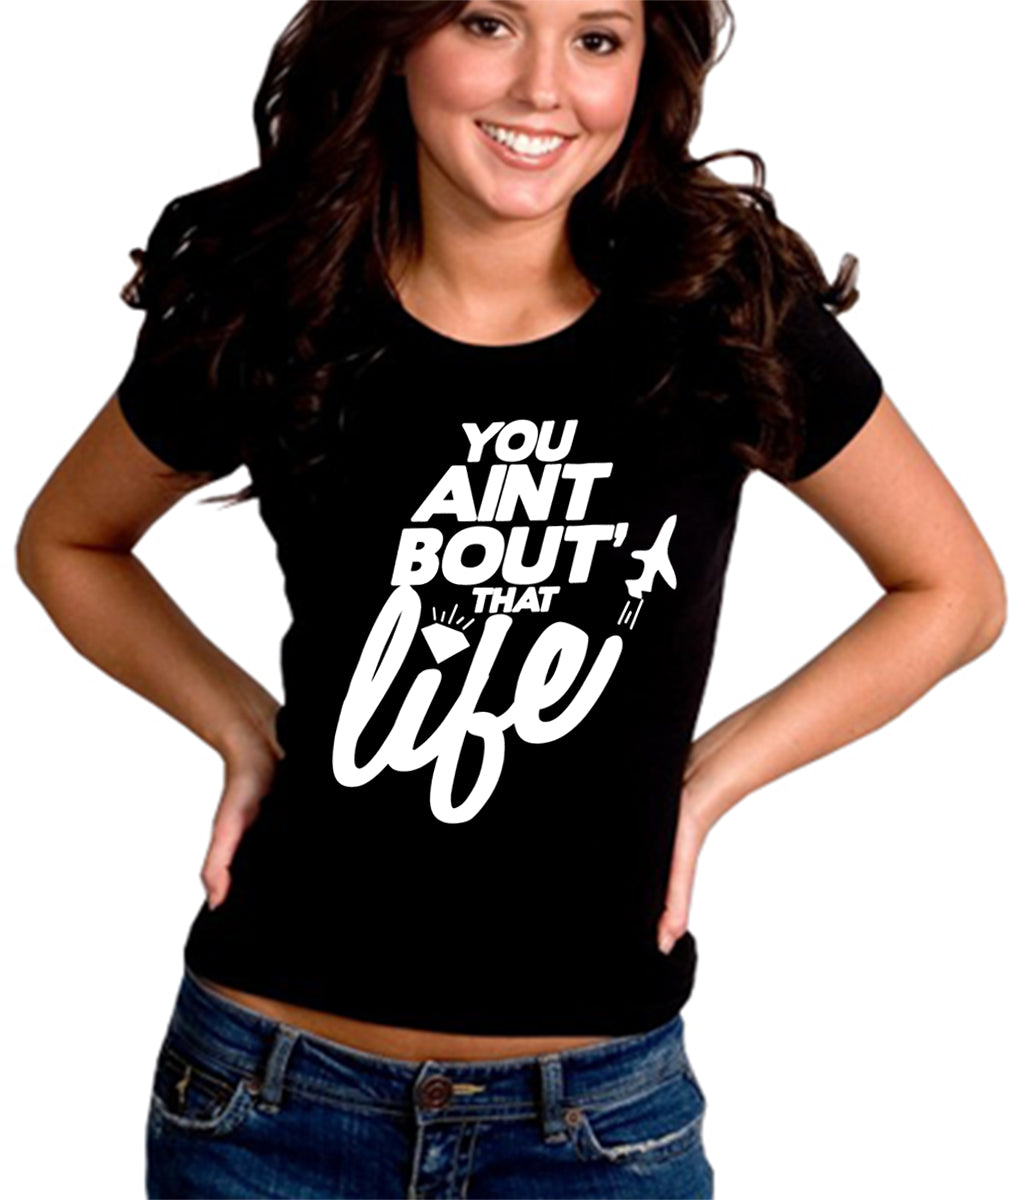 You Aint Bout' That Life Girl's T-Shirt